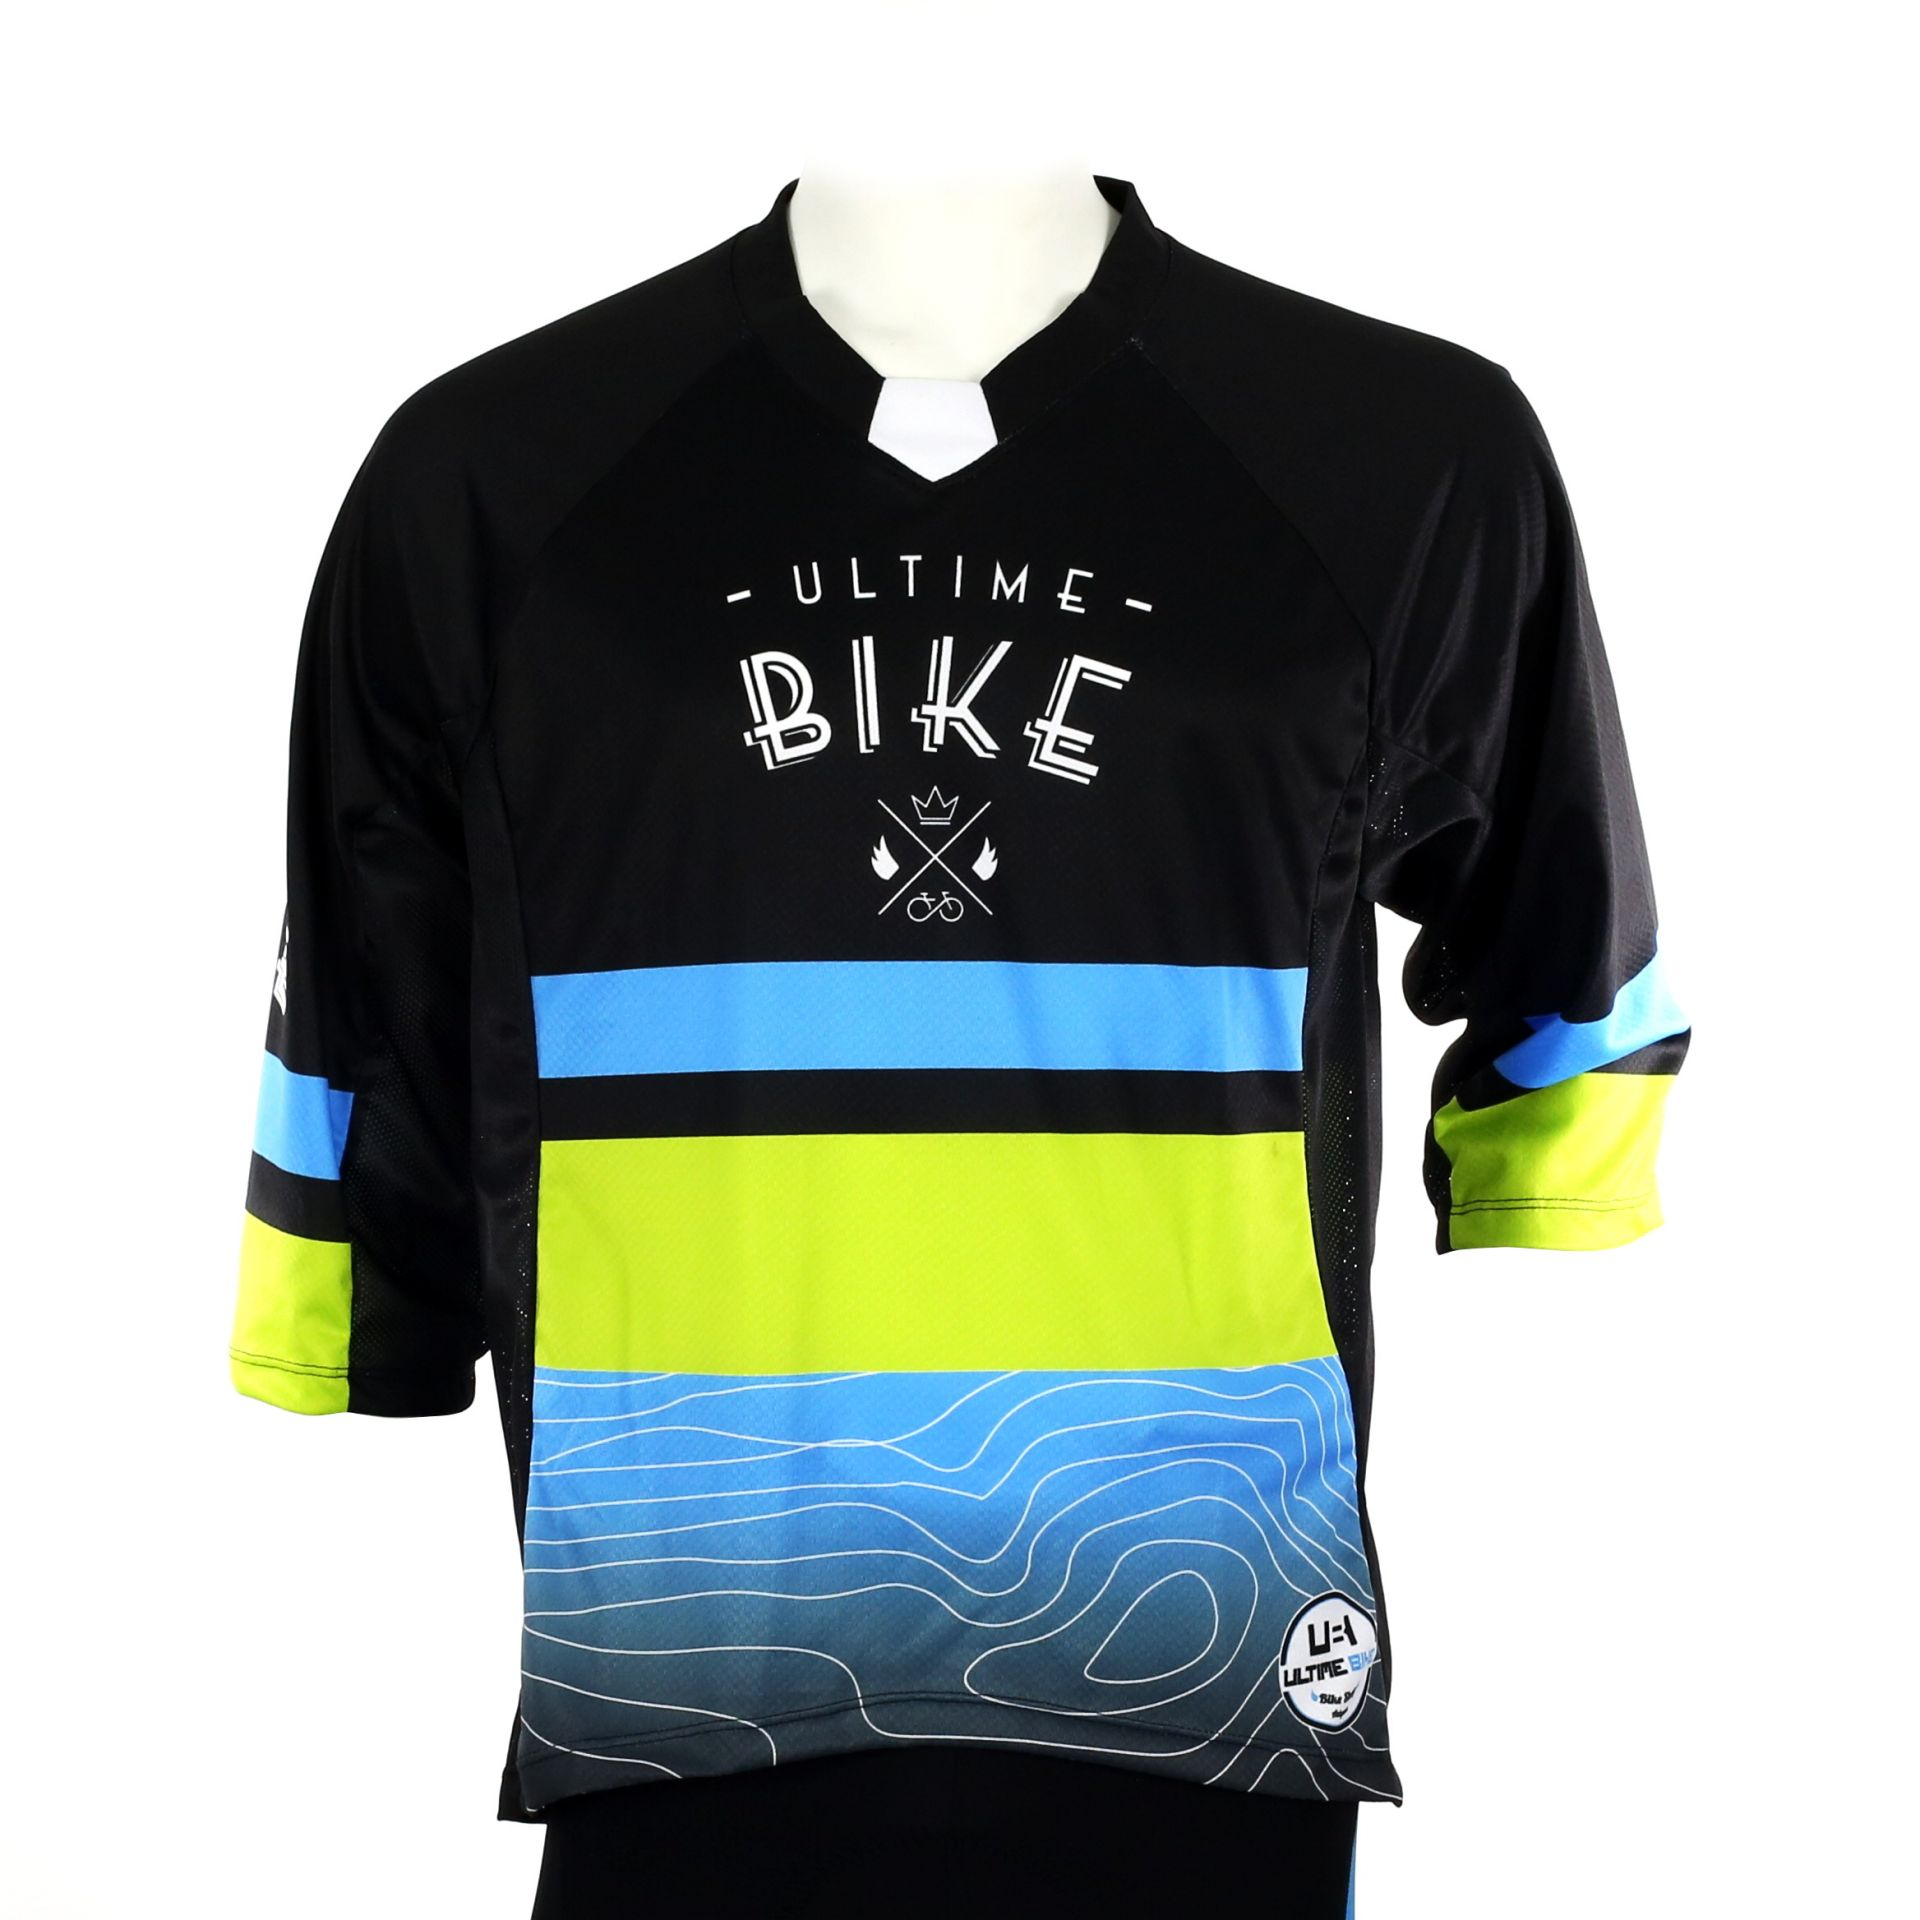 Maillot UltimeBike Enduro by TACTIC Manches 3/4 - L